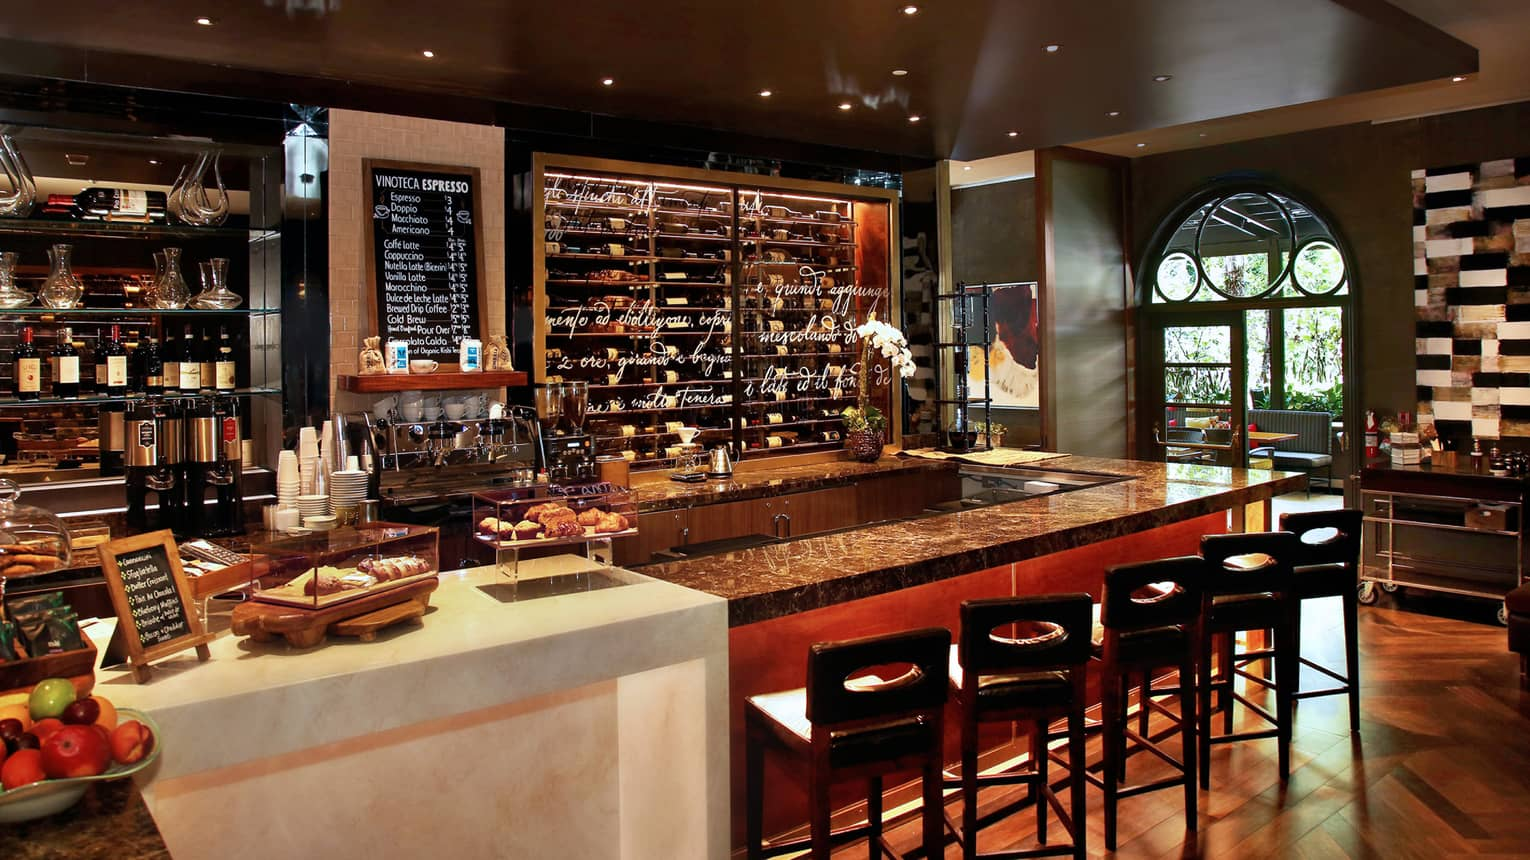 Vinoteca lounge bar lined with stools in front of glass wall, wine rack, chalk board with espresso options